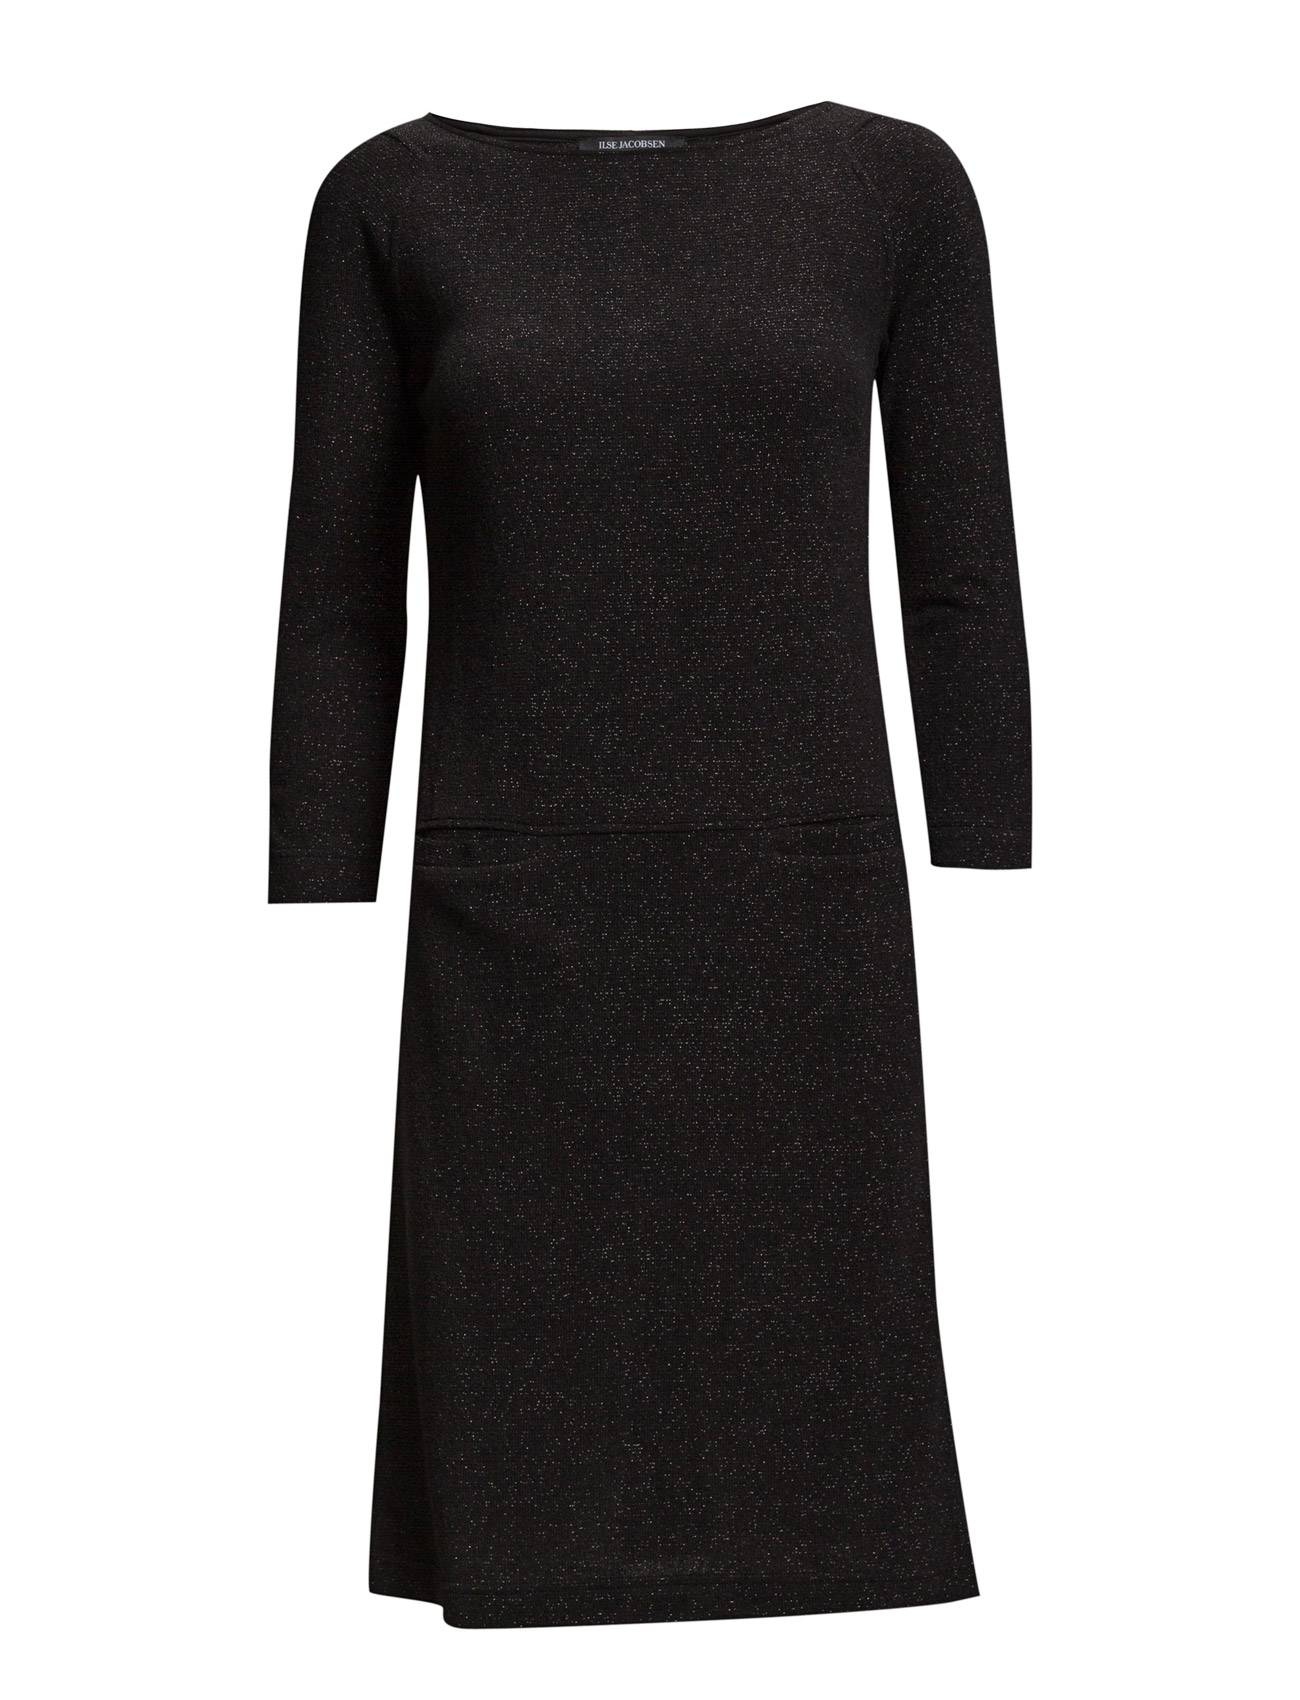 Ilse Jacobsen Womens Dress